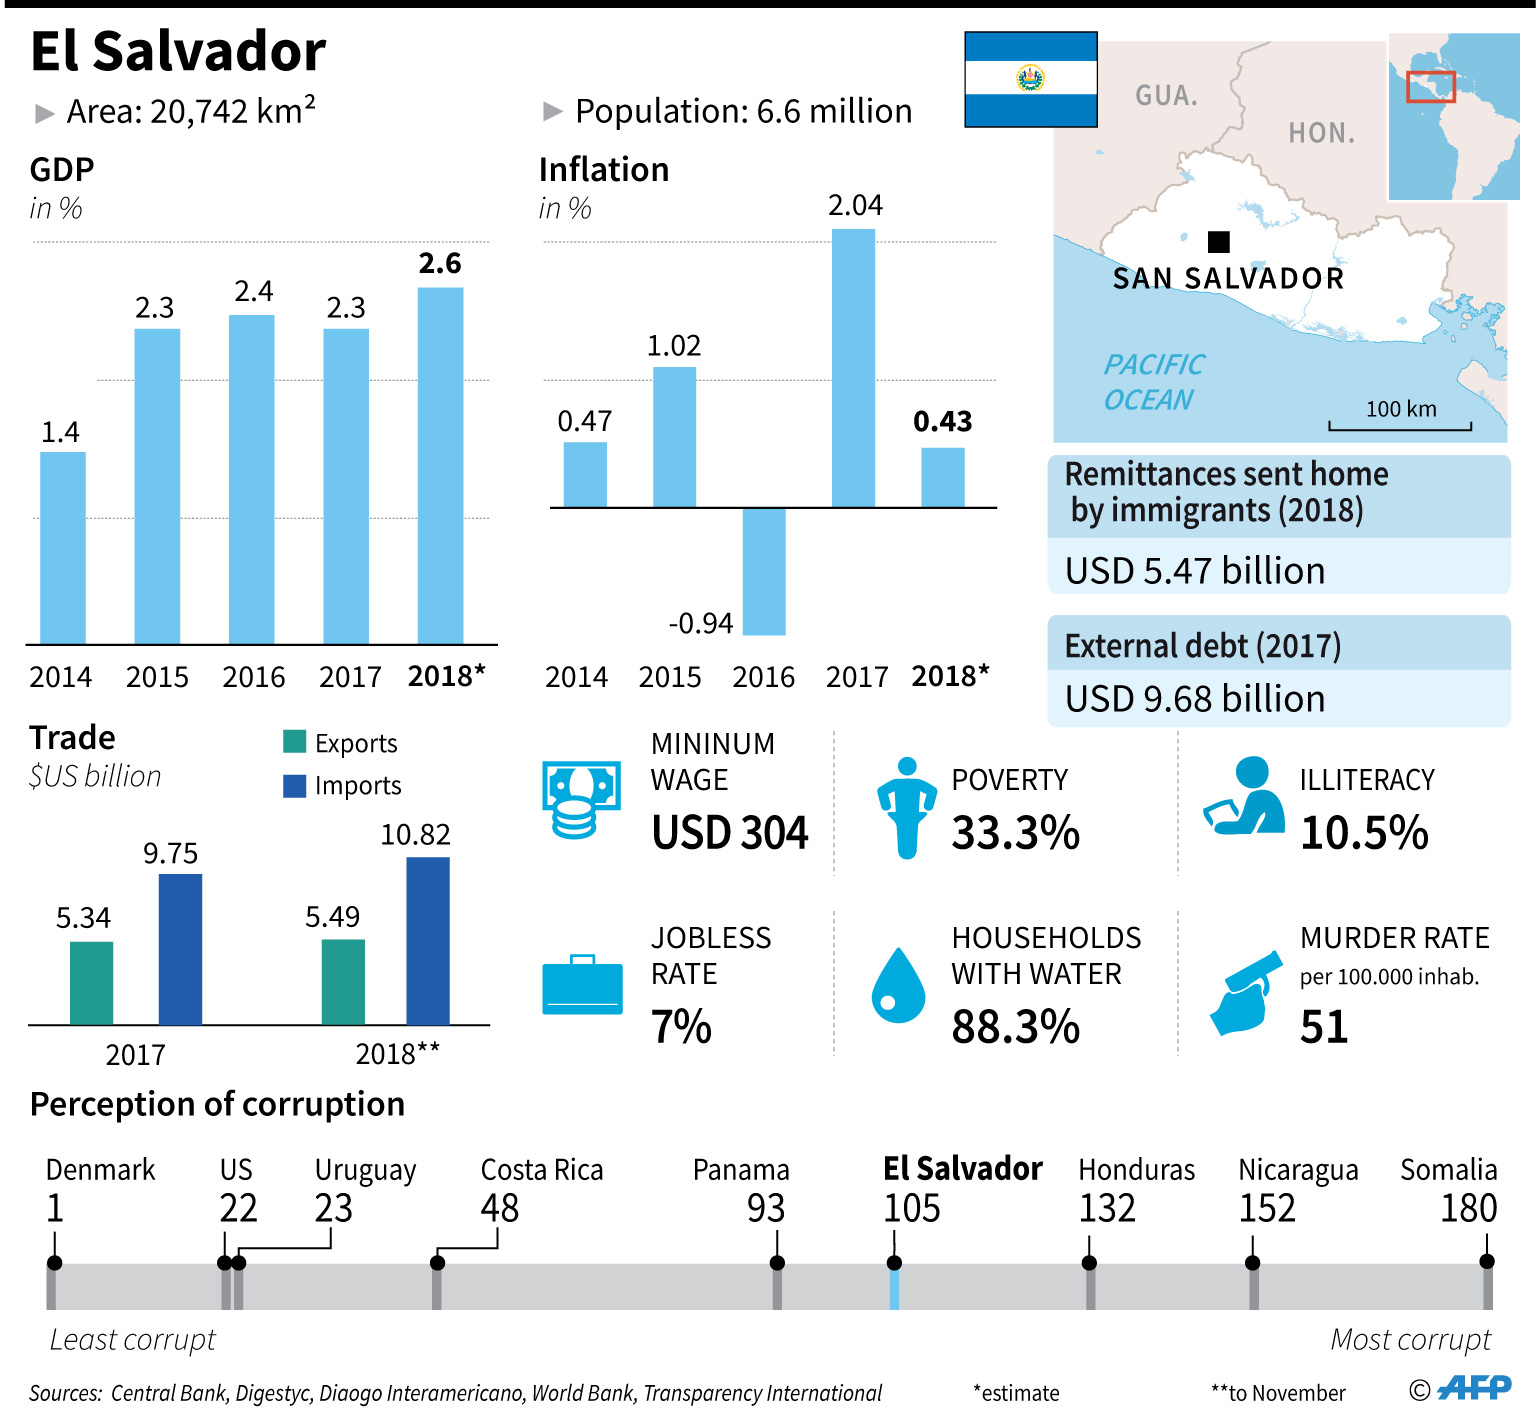 Country factfile on El Salvador